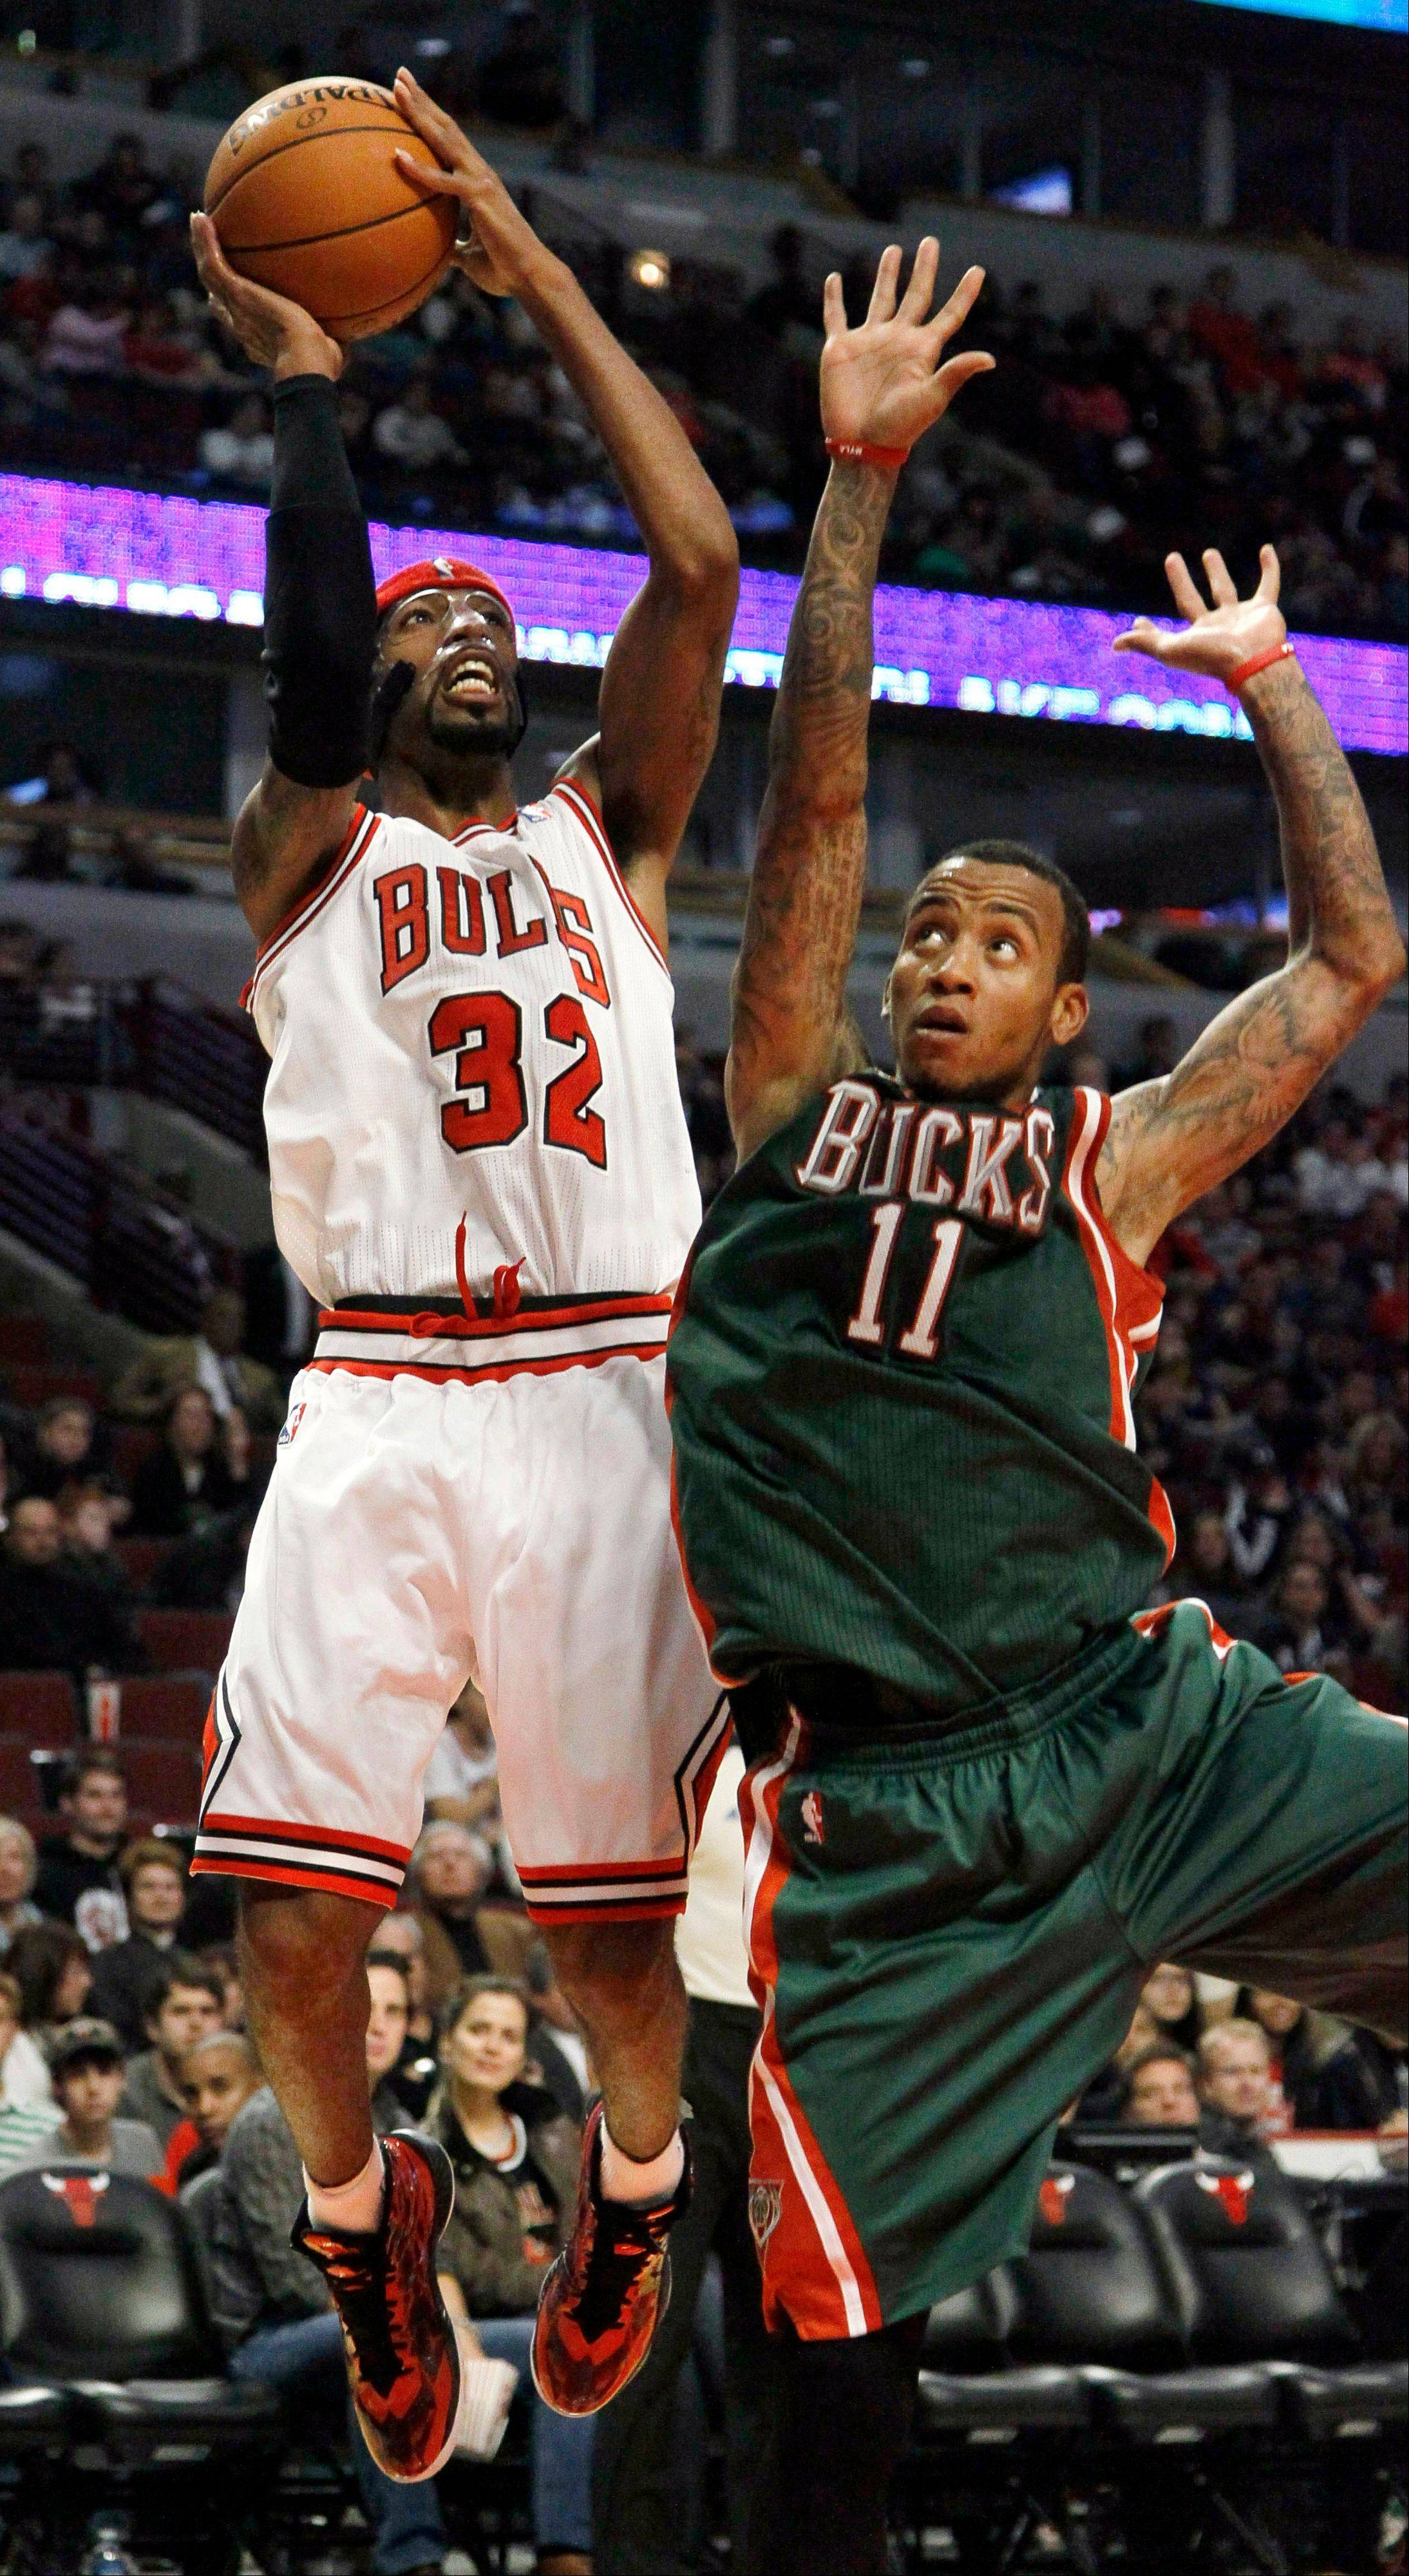 Bulls guard Richard Hamilton shoots over the Bucks' Monta Ellis during the second half of Tuesday's preseason game.